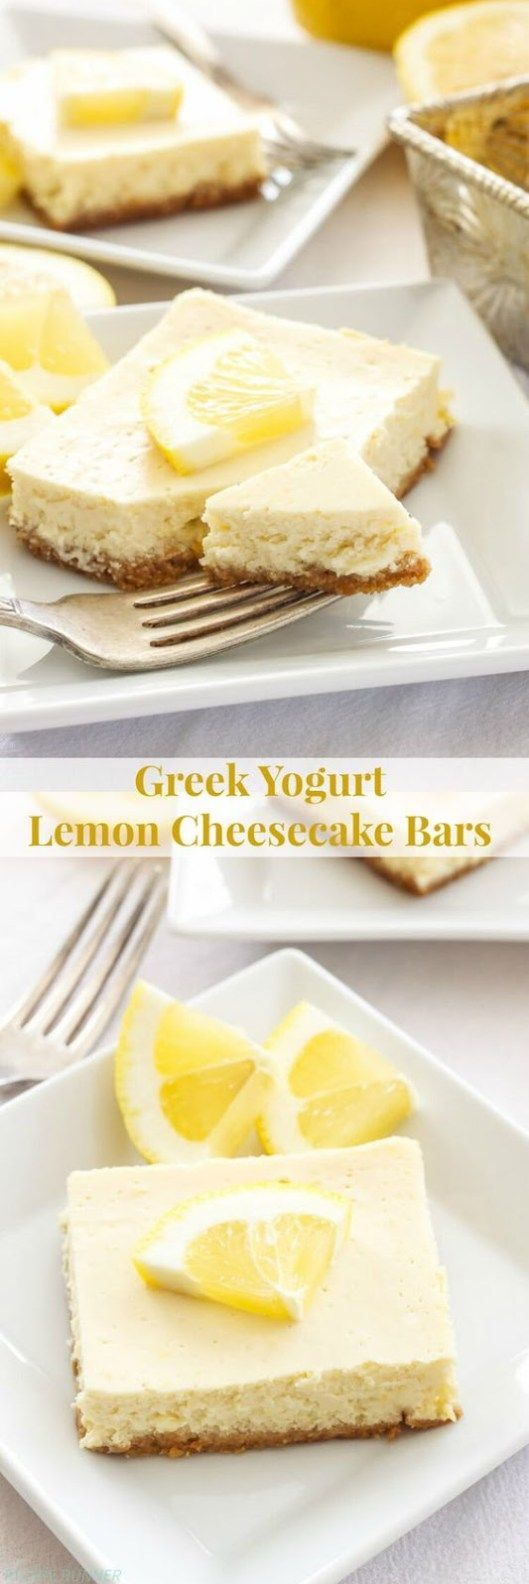 Greek Yogurt Lemon Cheesecake Bars Recipe – Girls Dishes